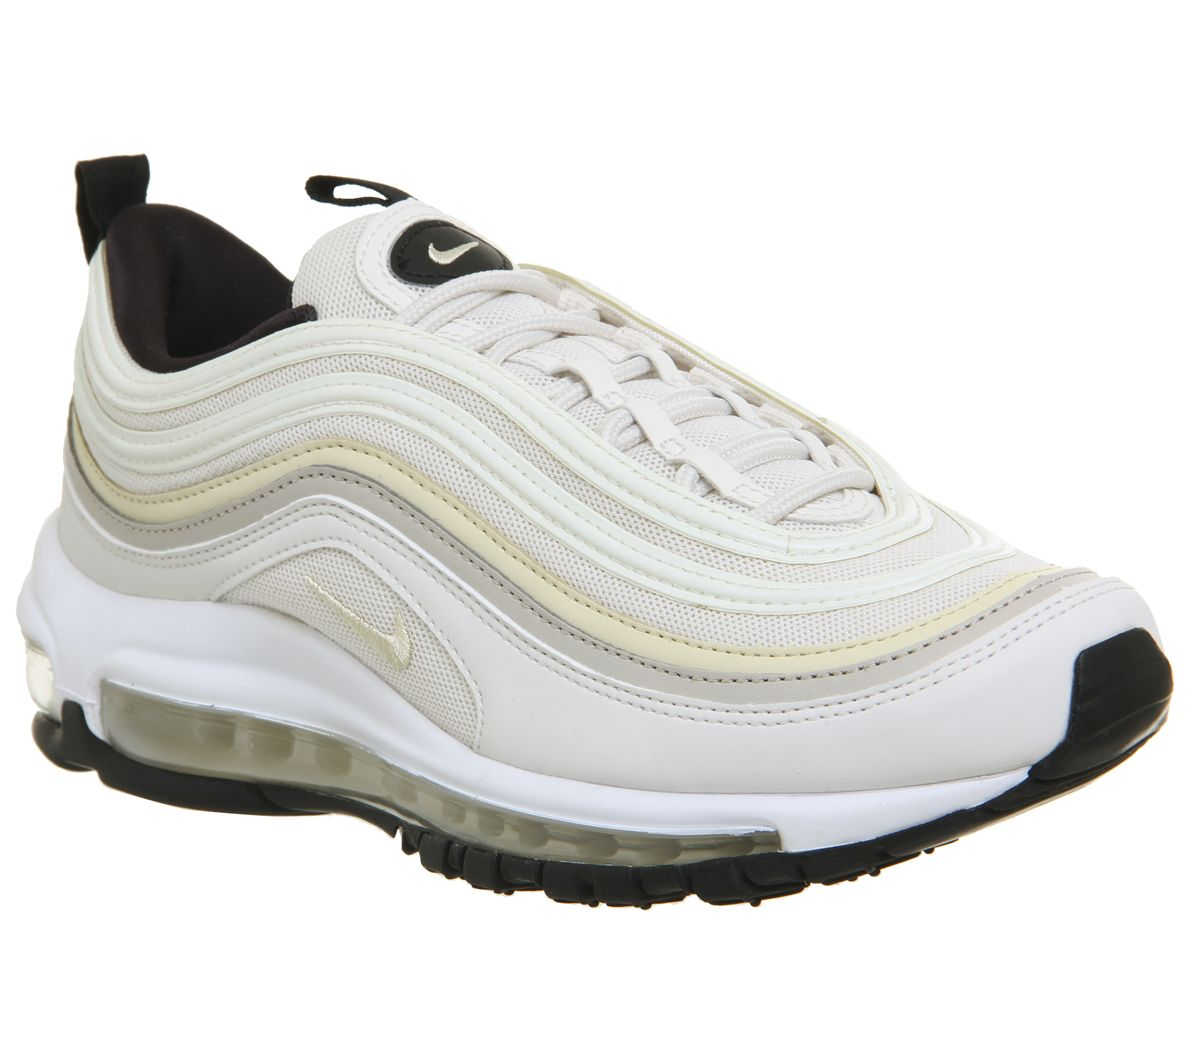 ffef069c Nike Air Max 97 Trainers Phantom Beach Desert Sand F - Hers trainers